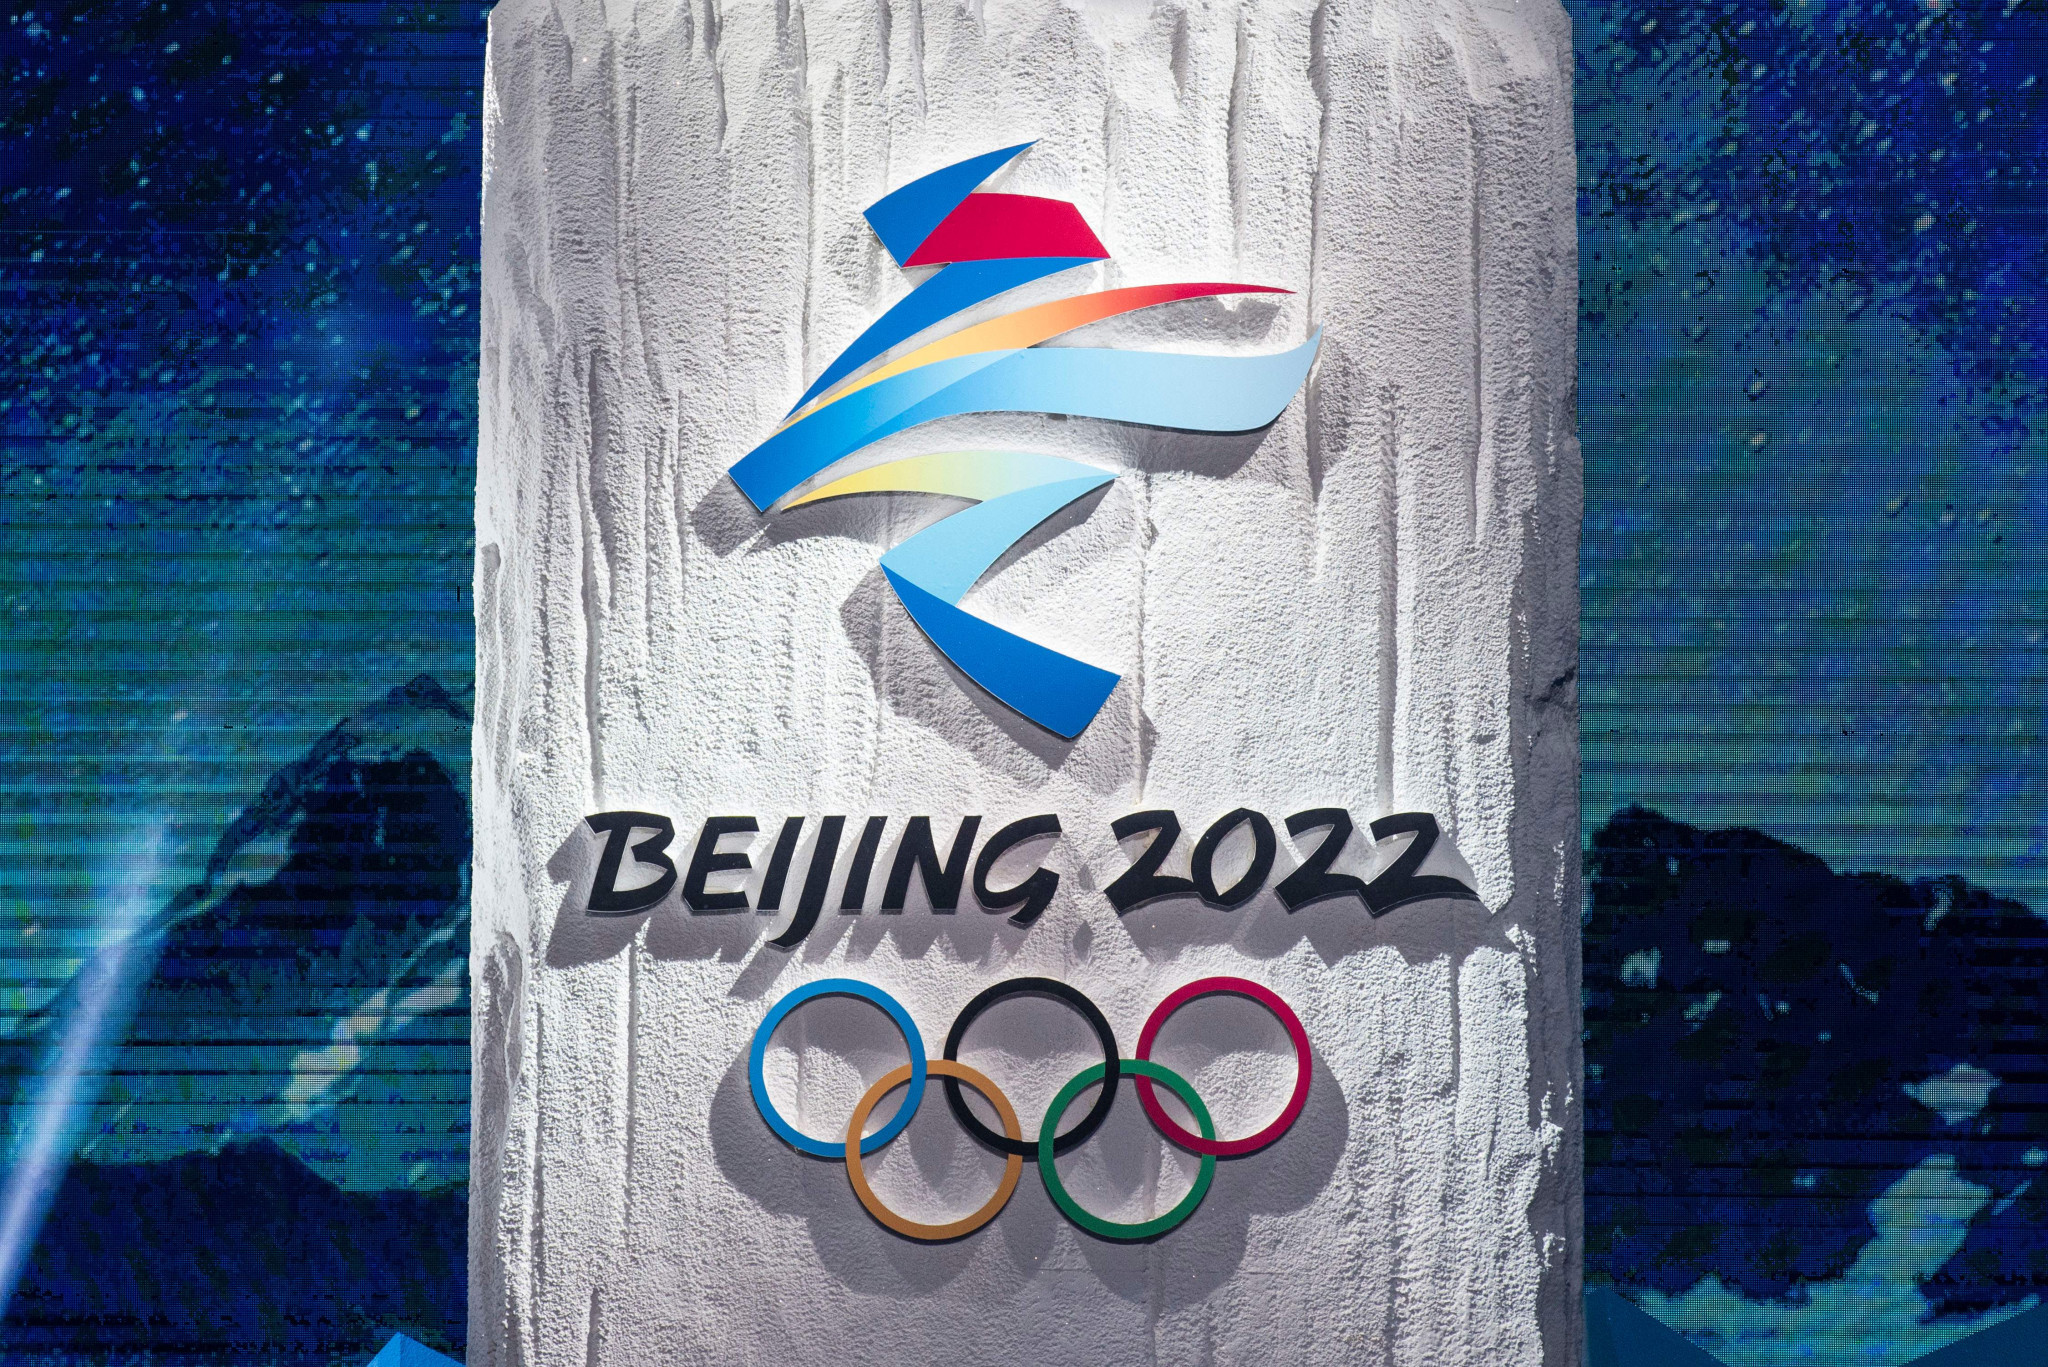 Beijing 2022 begin work on first of three Olympic Villages